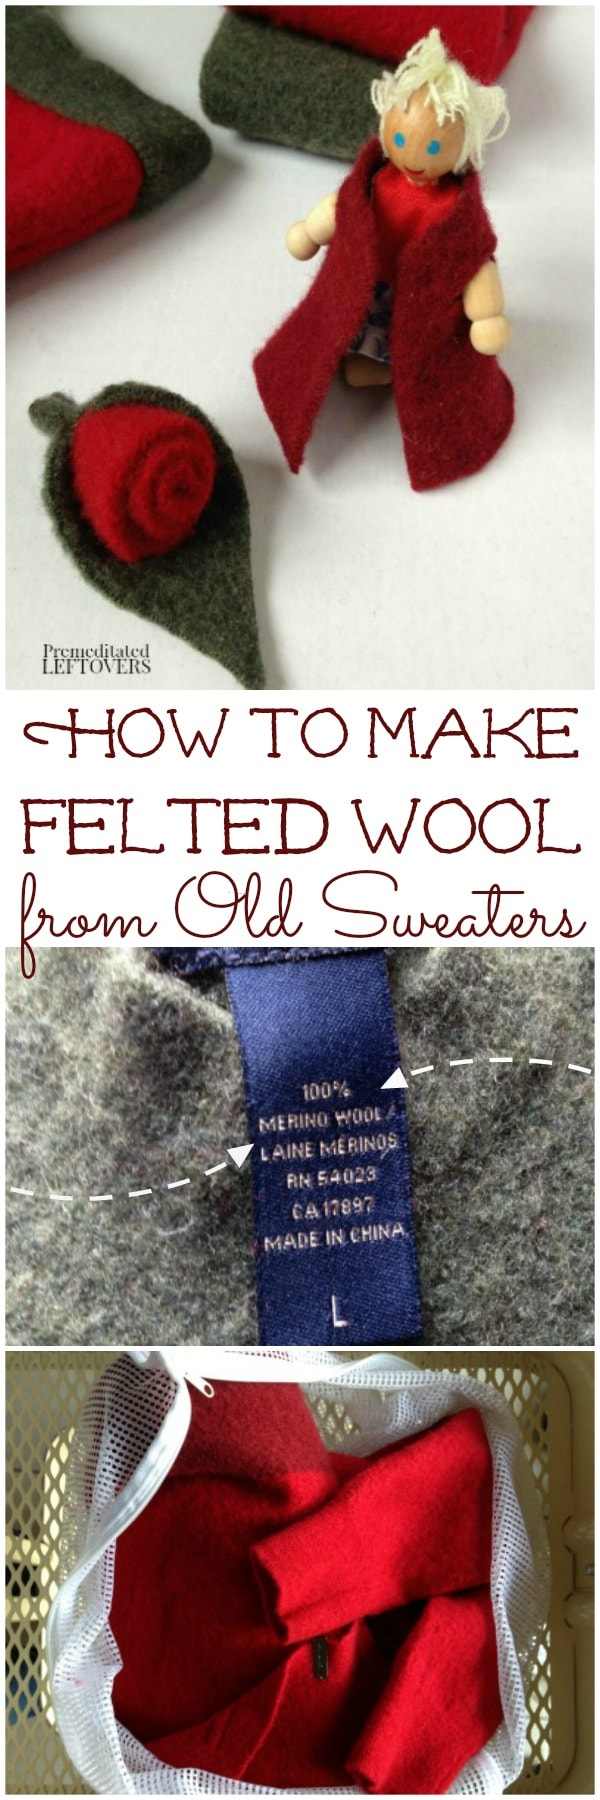 How to Make Felted Wool from Old Sweaters